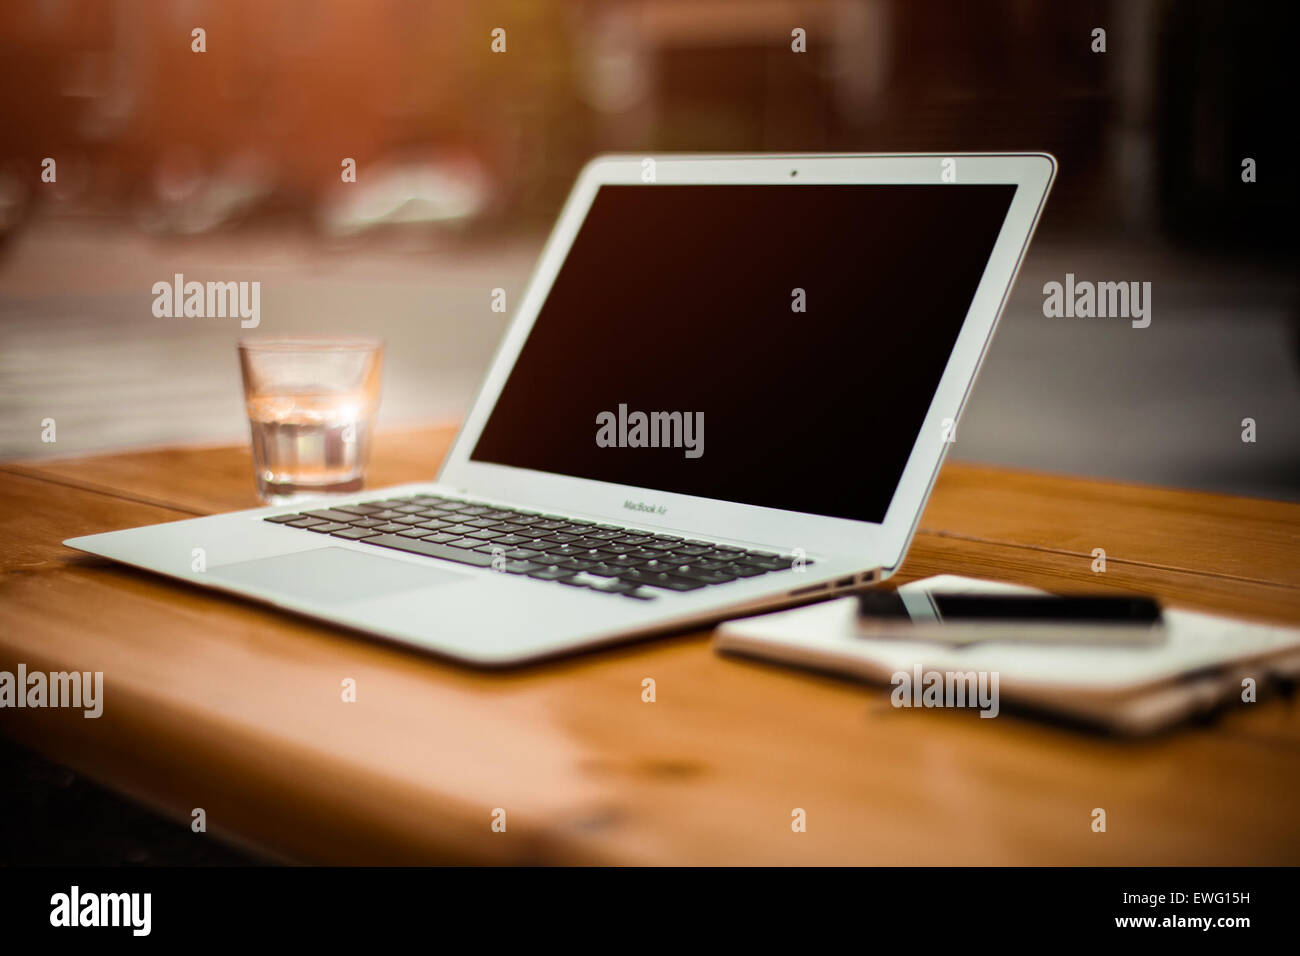 MacBook Air Still Life - Stock Image